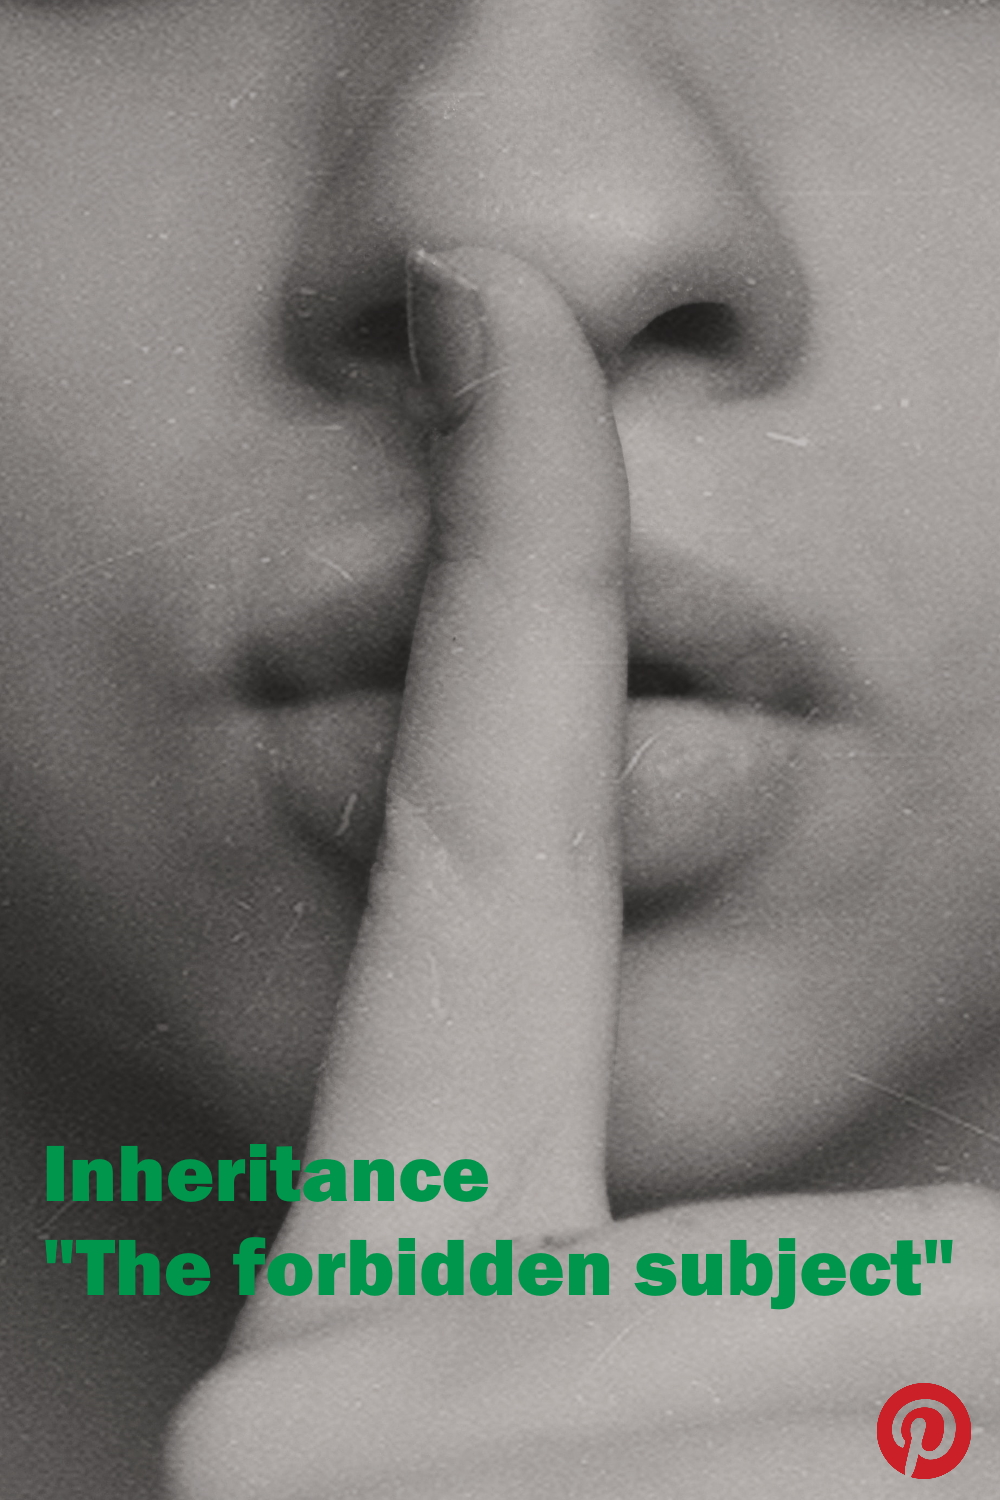 Inheritance - The forbidden subject!  What are the reasons why we need to open up the discussions around inheritance?